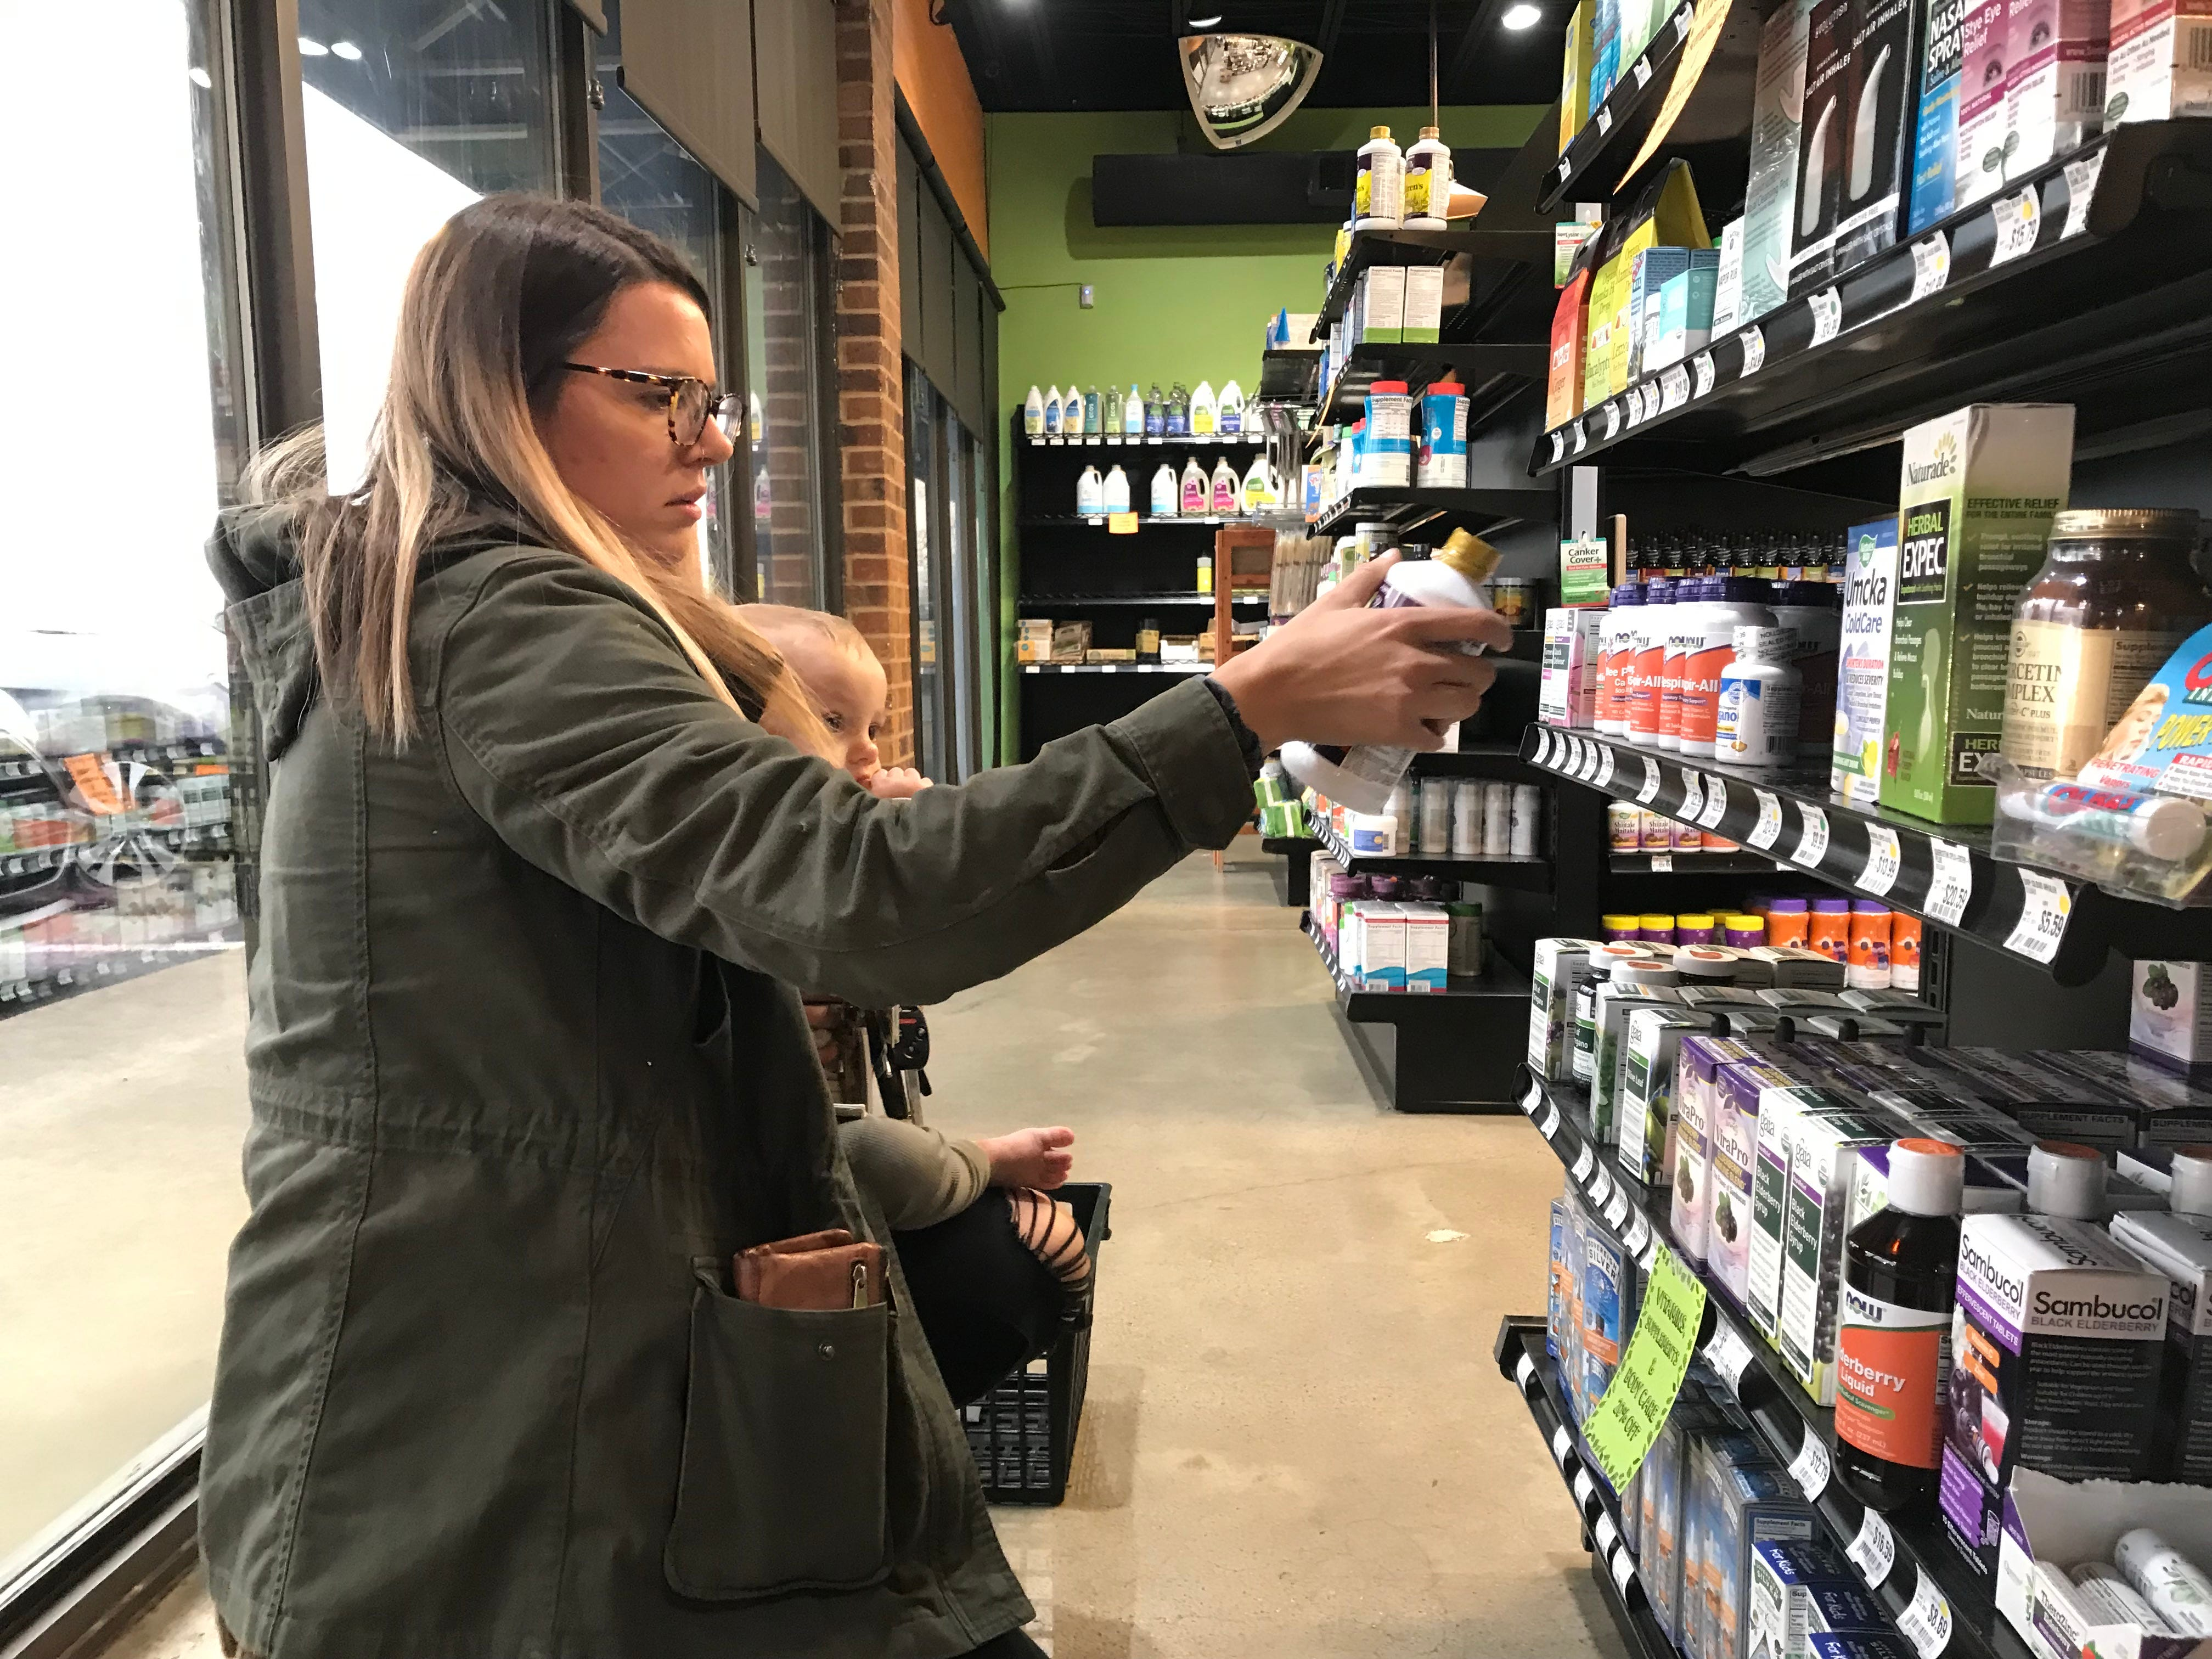 The Tree of Life Market, located at 30 Crossland Ave., is closing down Dec. 22, four years after it opened to offer specialty items, such as organic foods, alternative medicine products and much more.